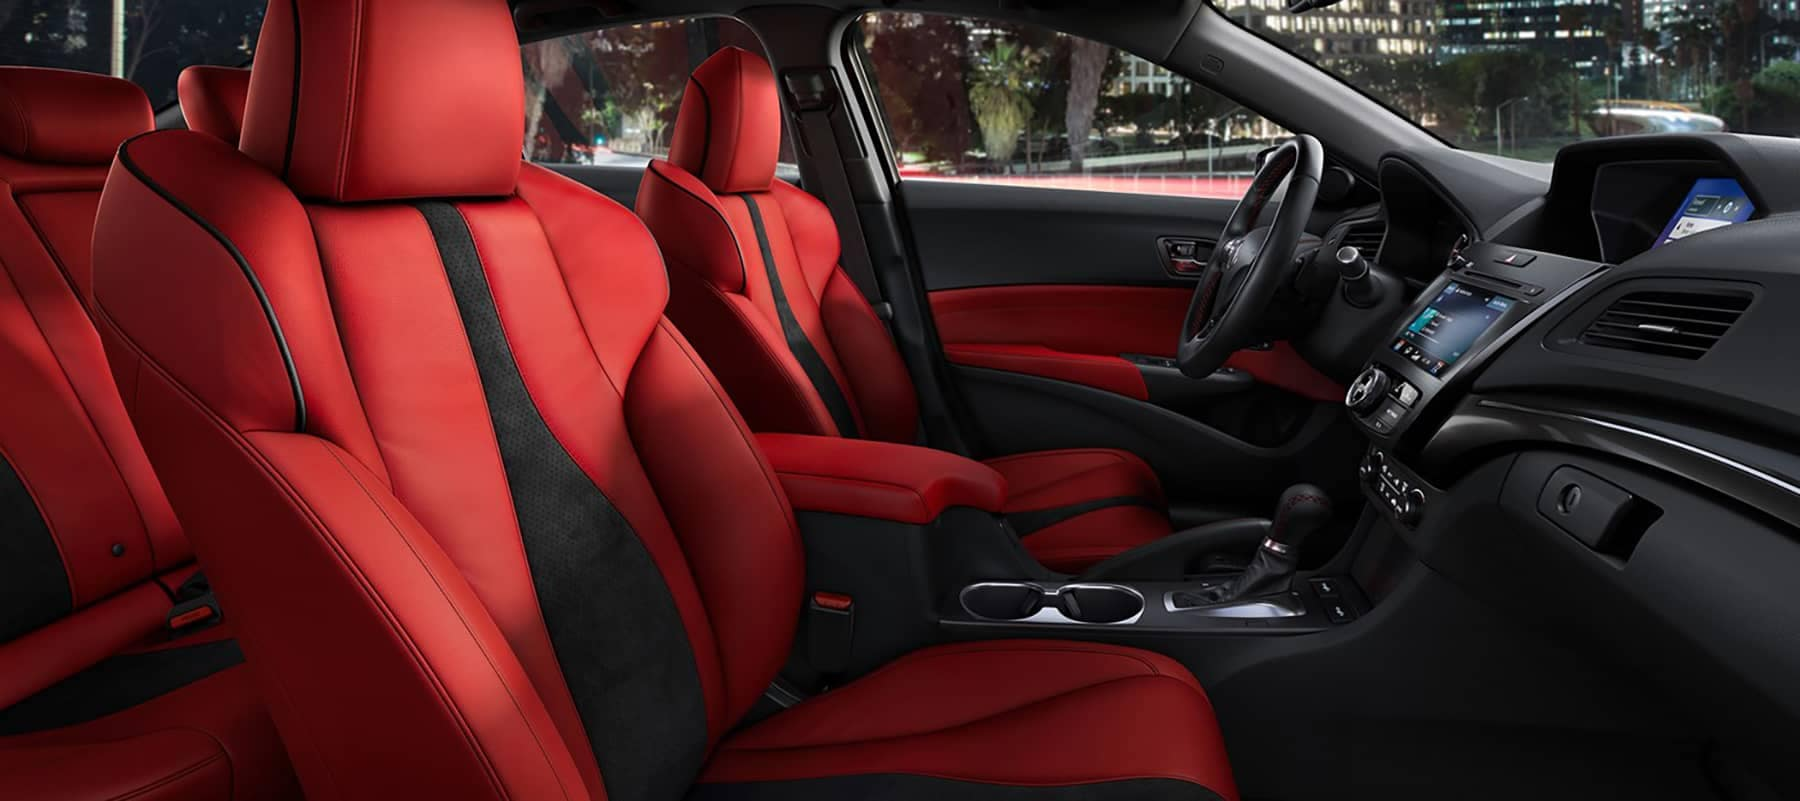 Relax And Unwind In The Luxurious 2019 Acura Ilx Interior